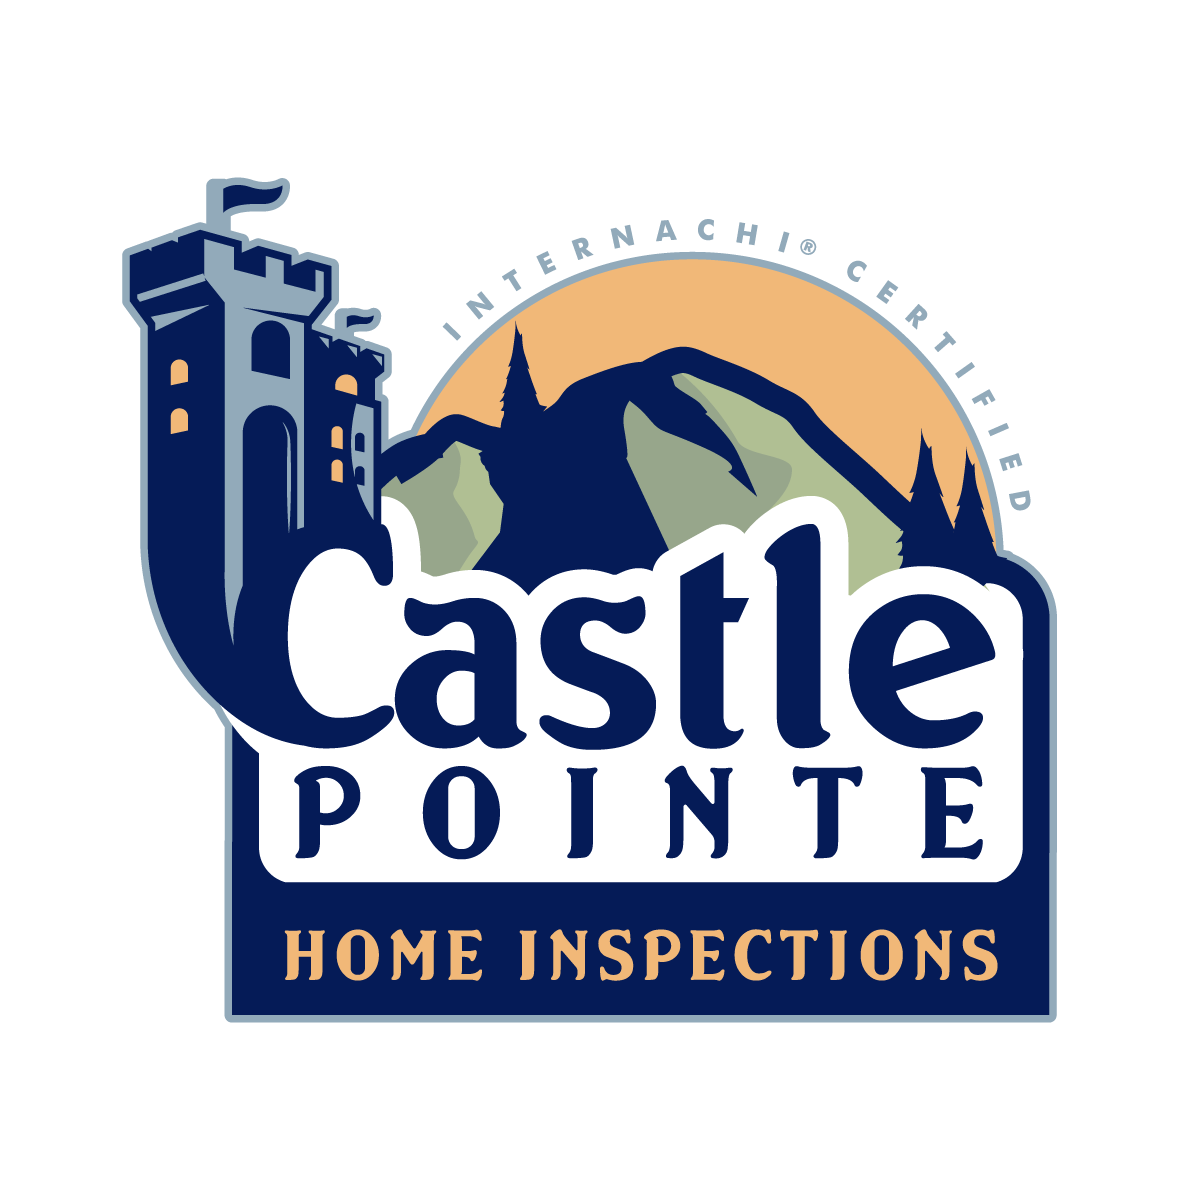 Castle Pointe Home Inspections